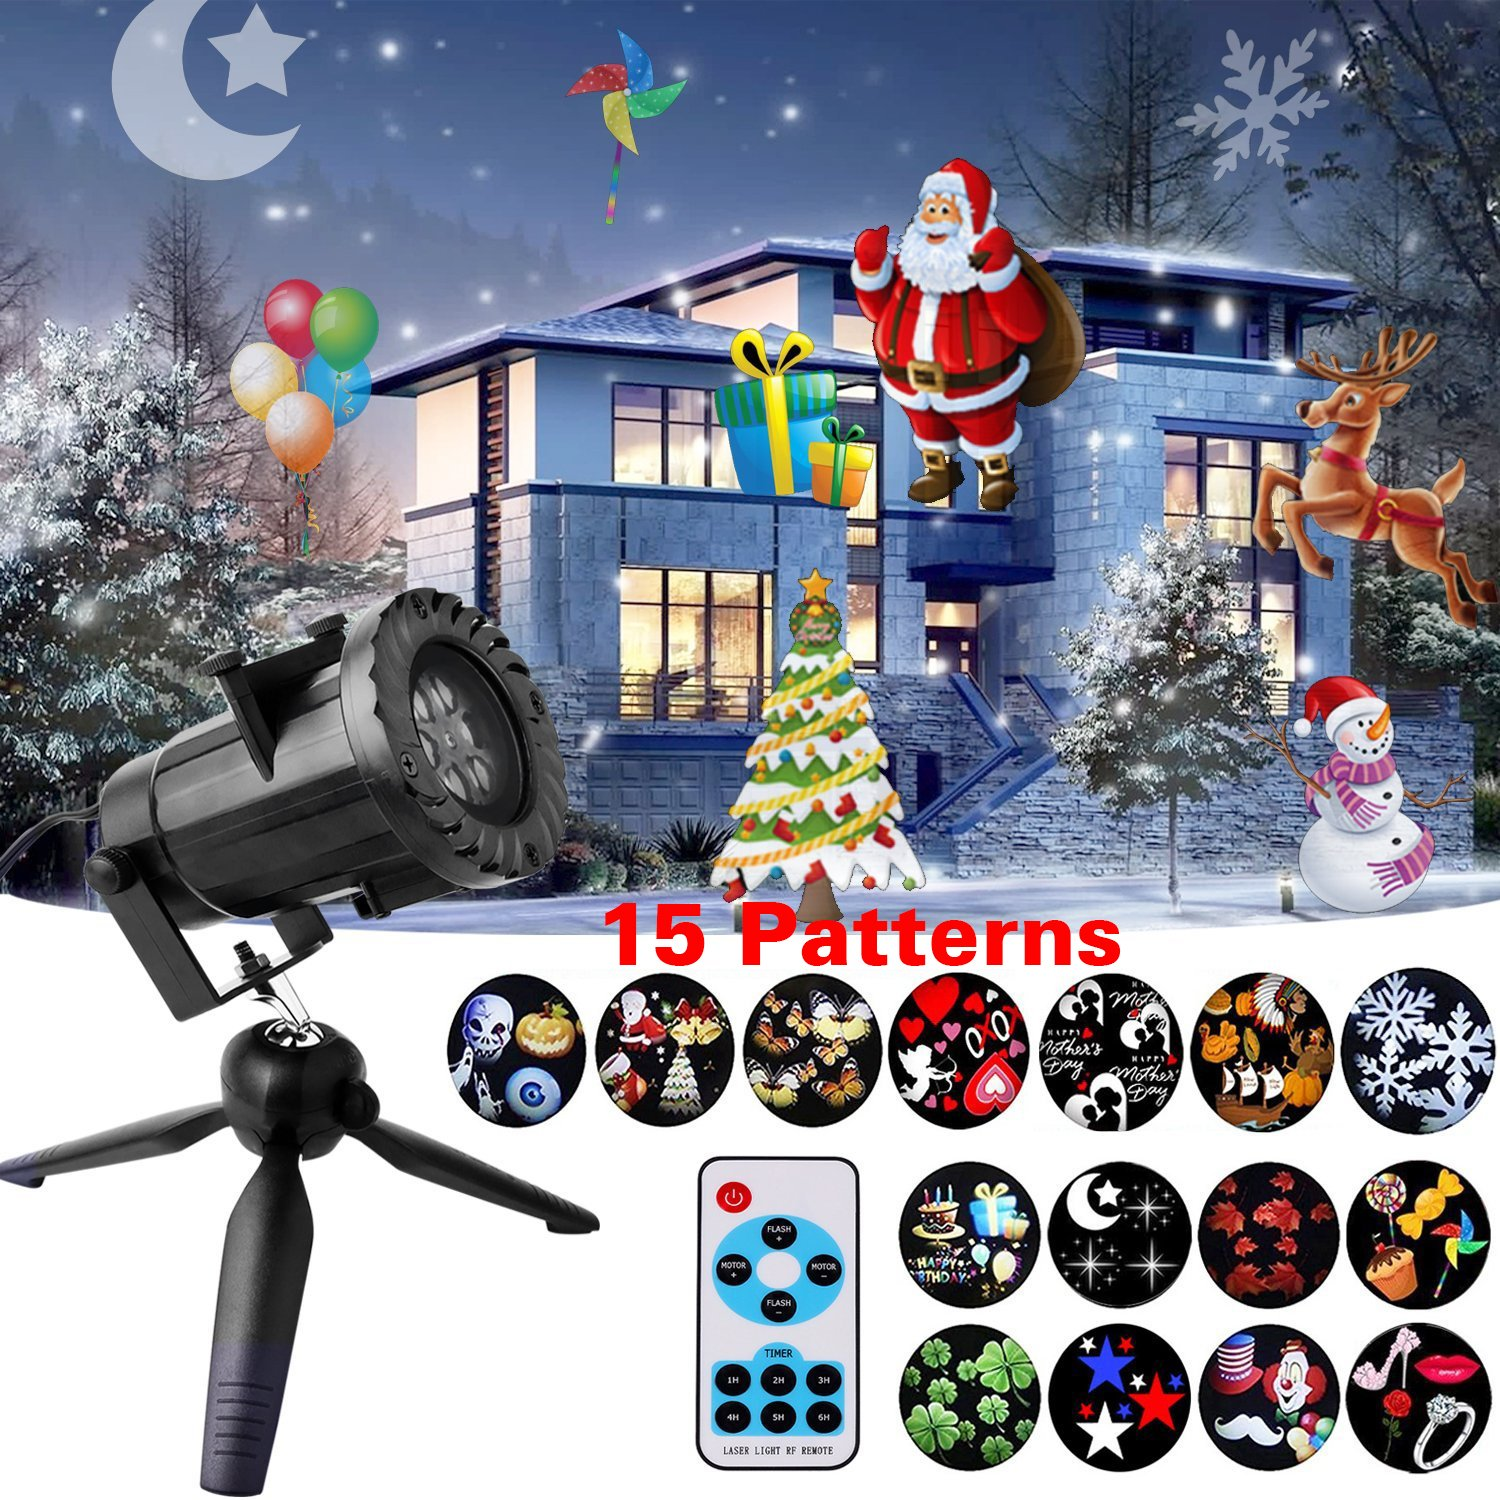 Remote Control Chirstmas Projector Light, Colleer Waterproof LED Landscape Lighting Spotlight with 15 Patterns for Christmas, Birthday, Halloween, Party, Weeding, Garden Decoration JJZM0056UK